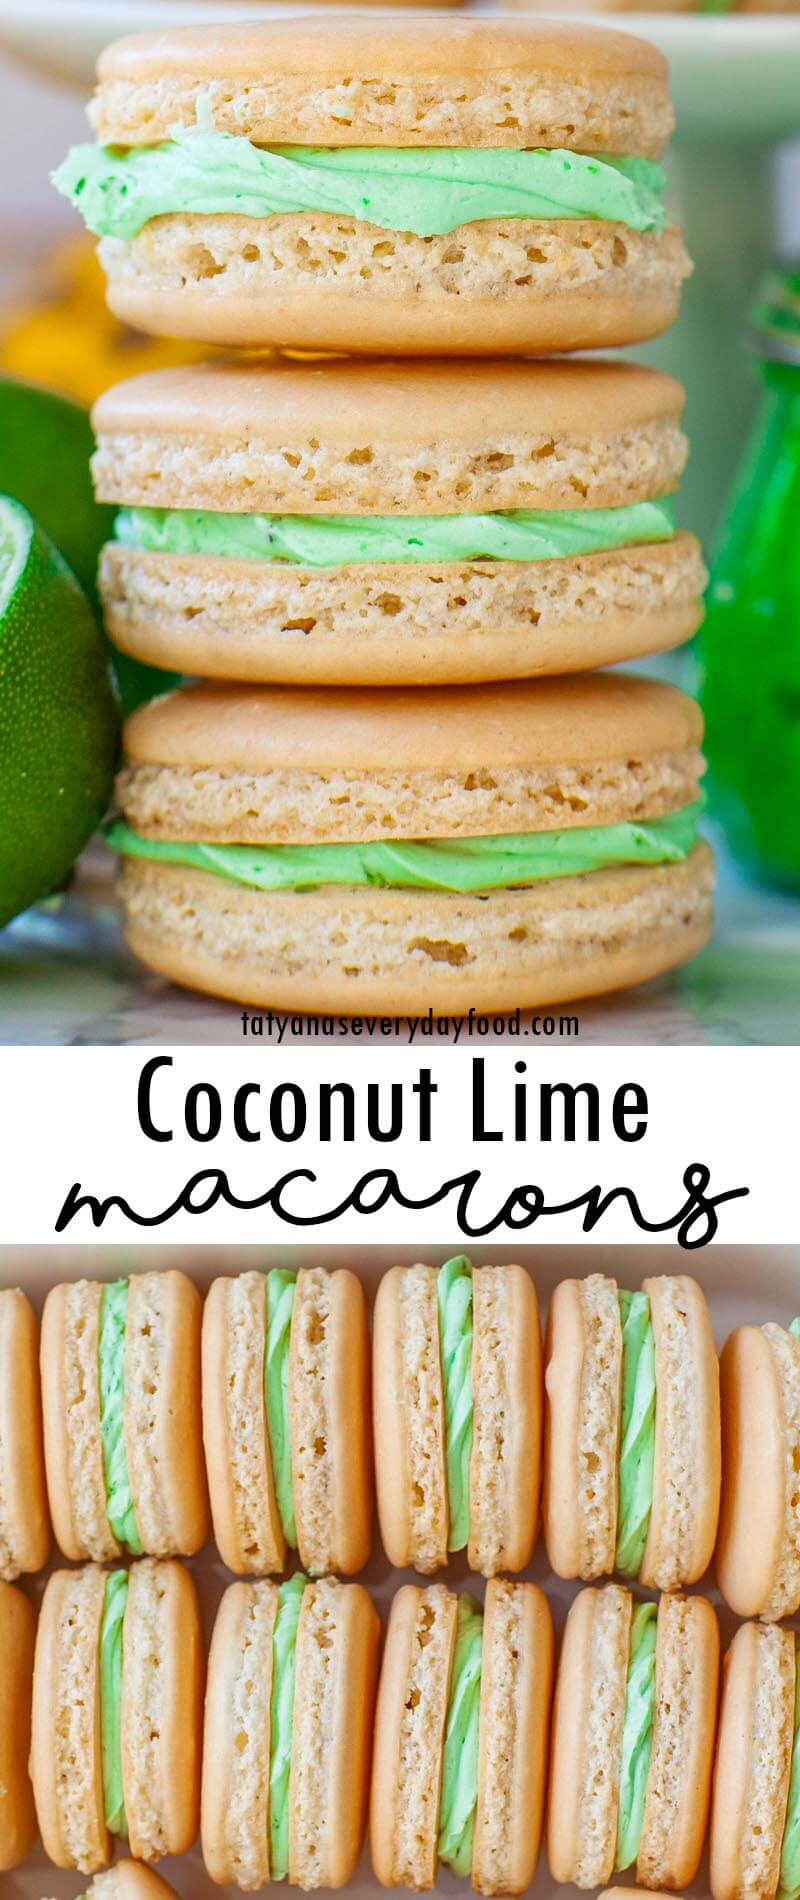 Coconut Lime Macarons video recipe